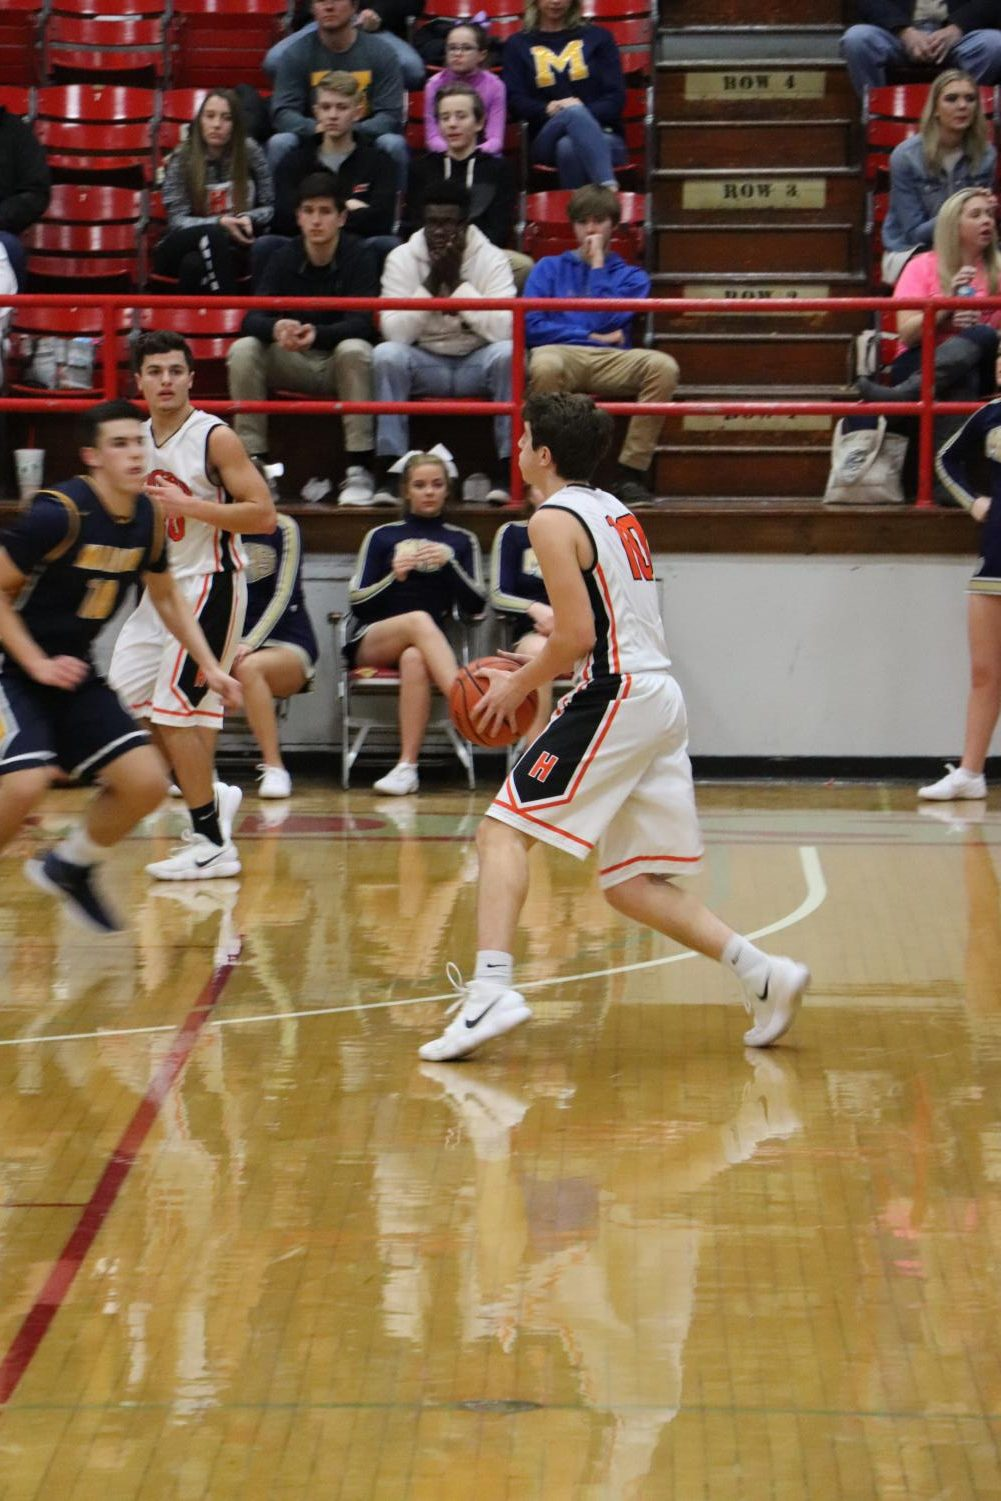 Senior Bronson Nesler dribbles the ball to the other side of the court.